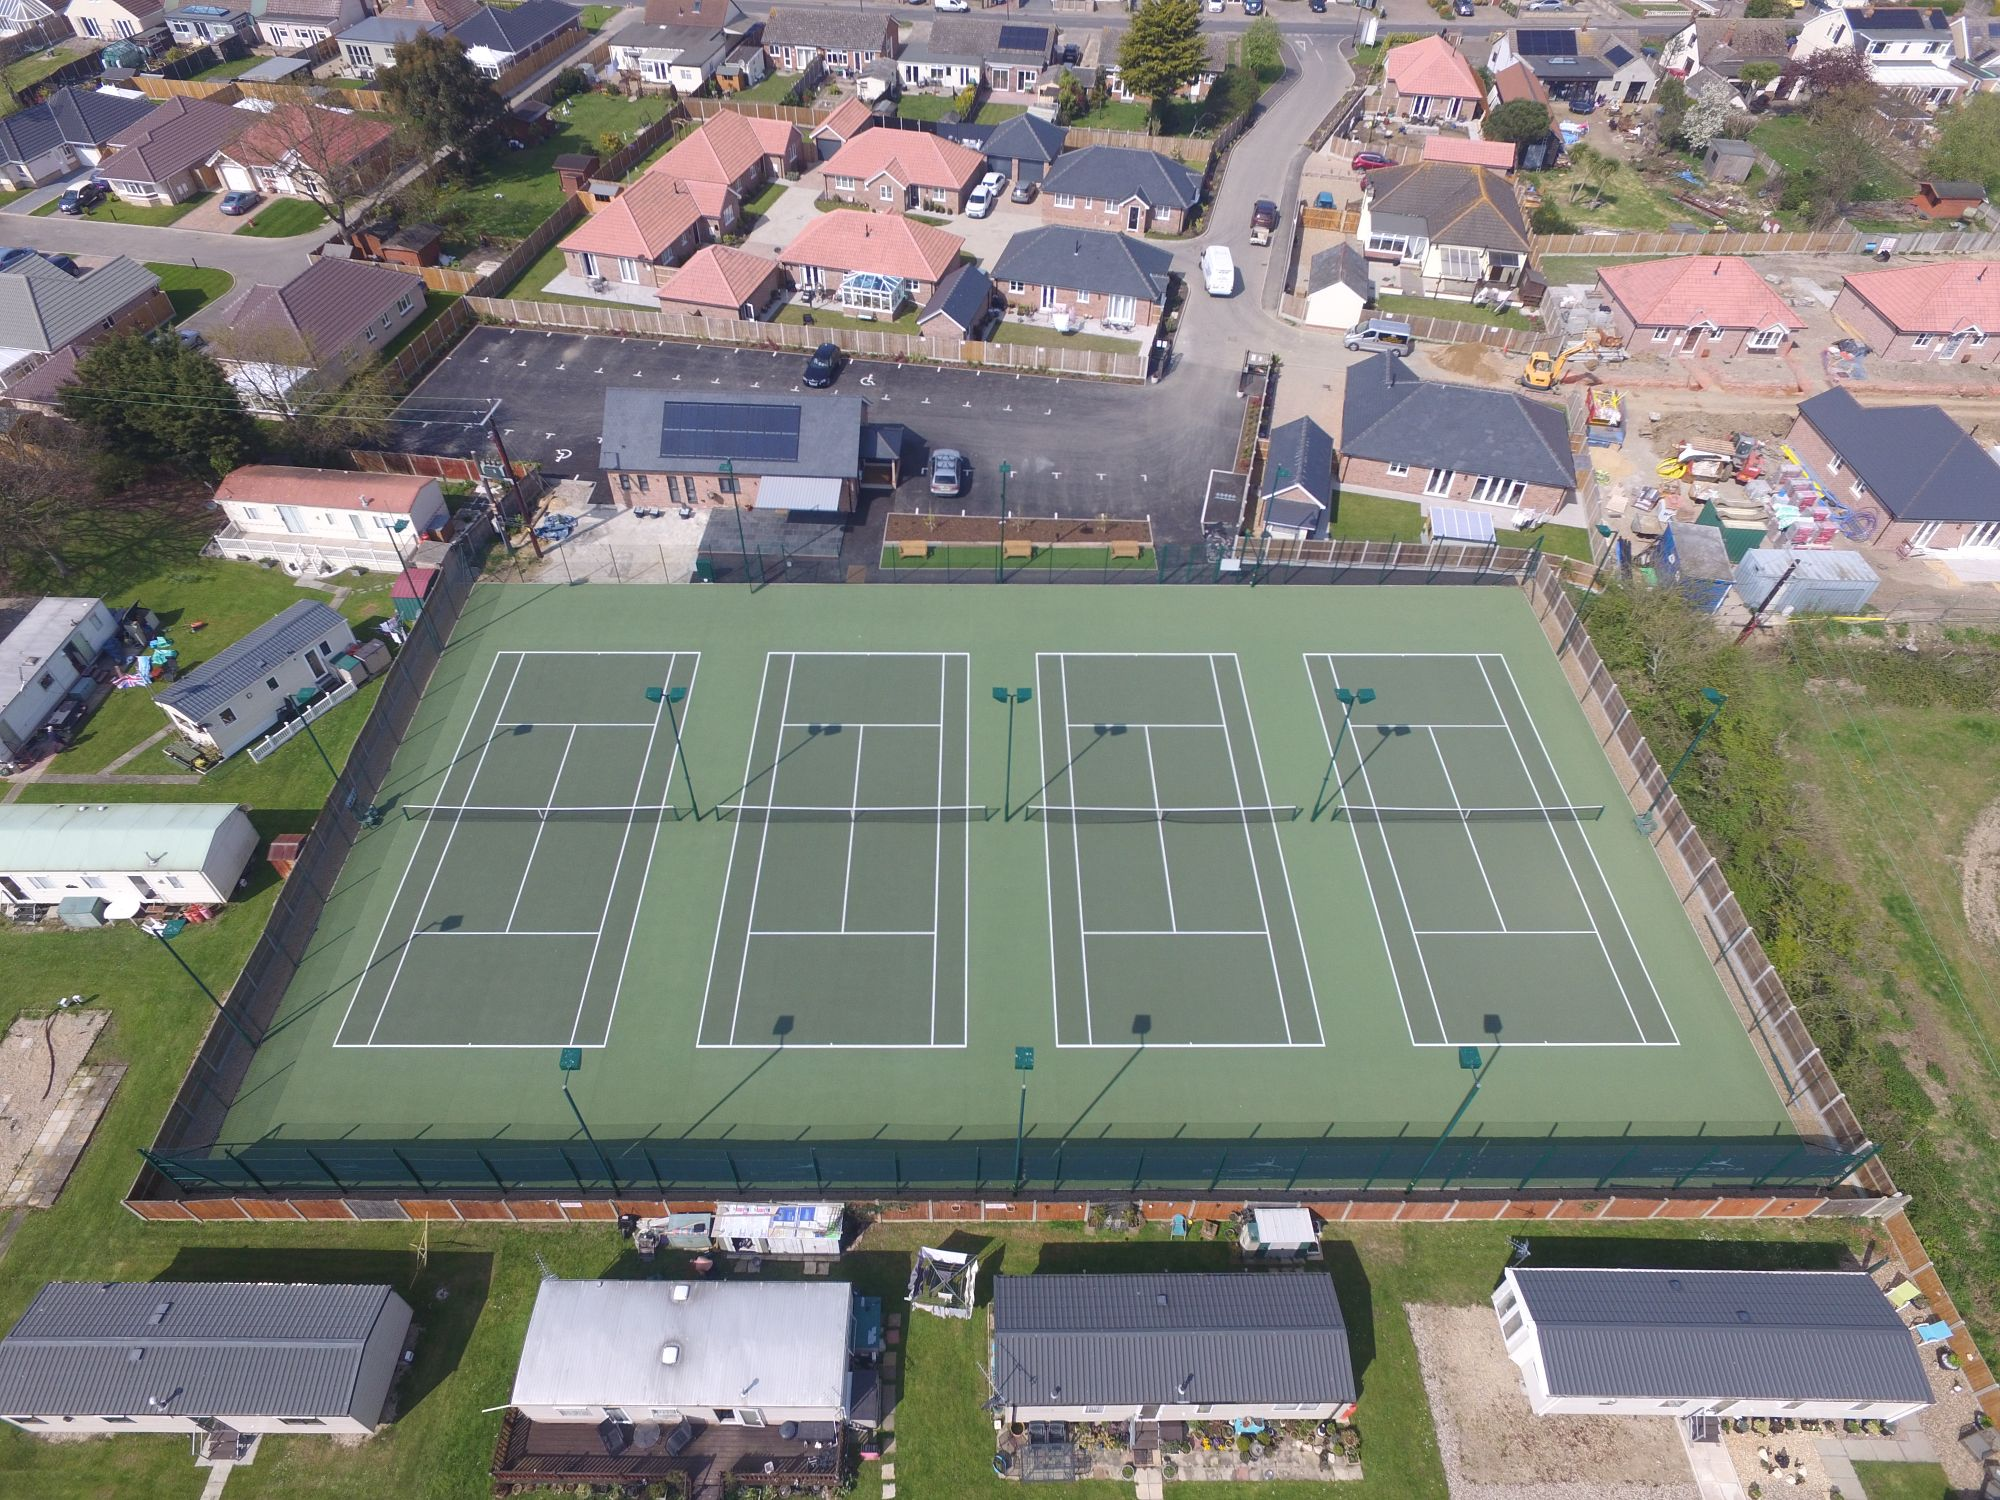 Our state-of-the-art asphalt tennis court surfaces are fully SAPCA compliant and constructed to the highest industry standards